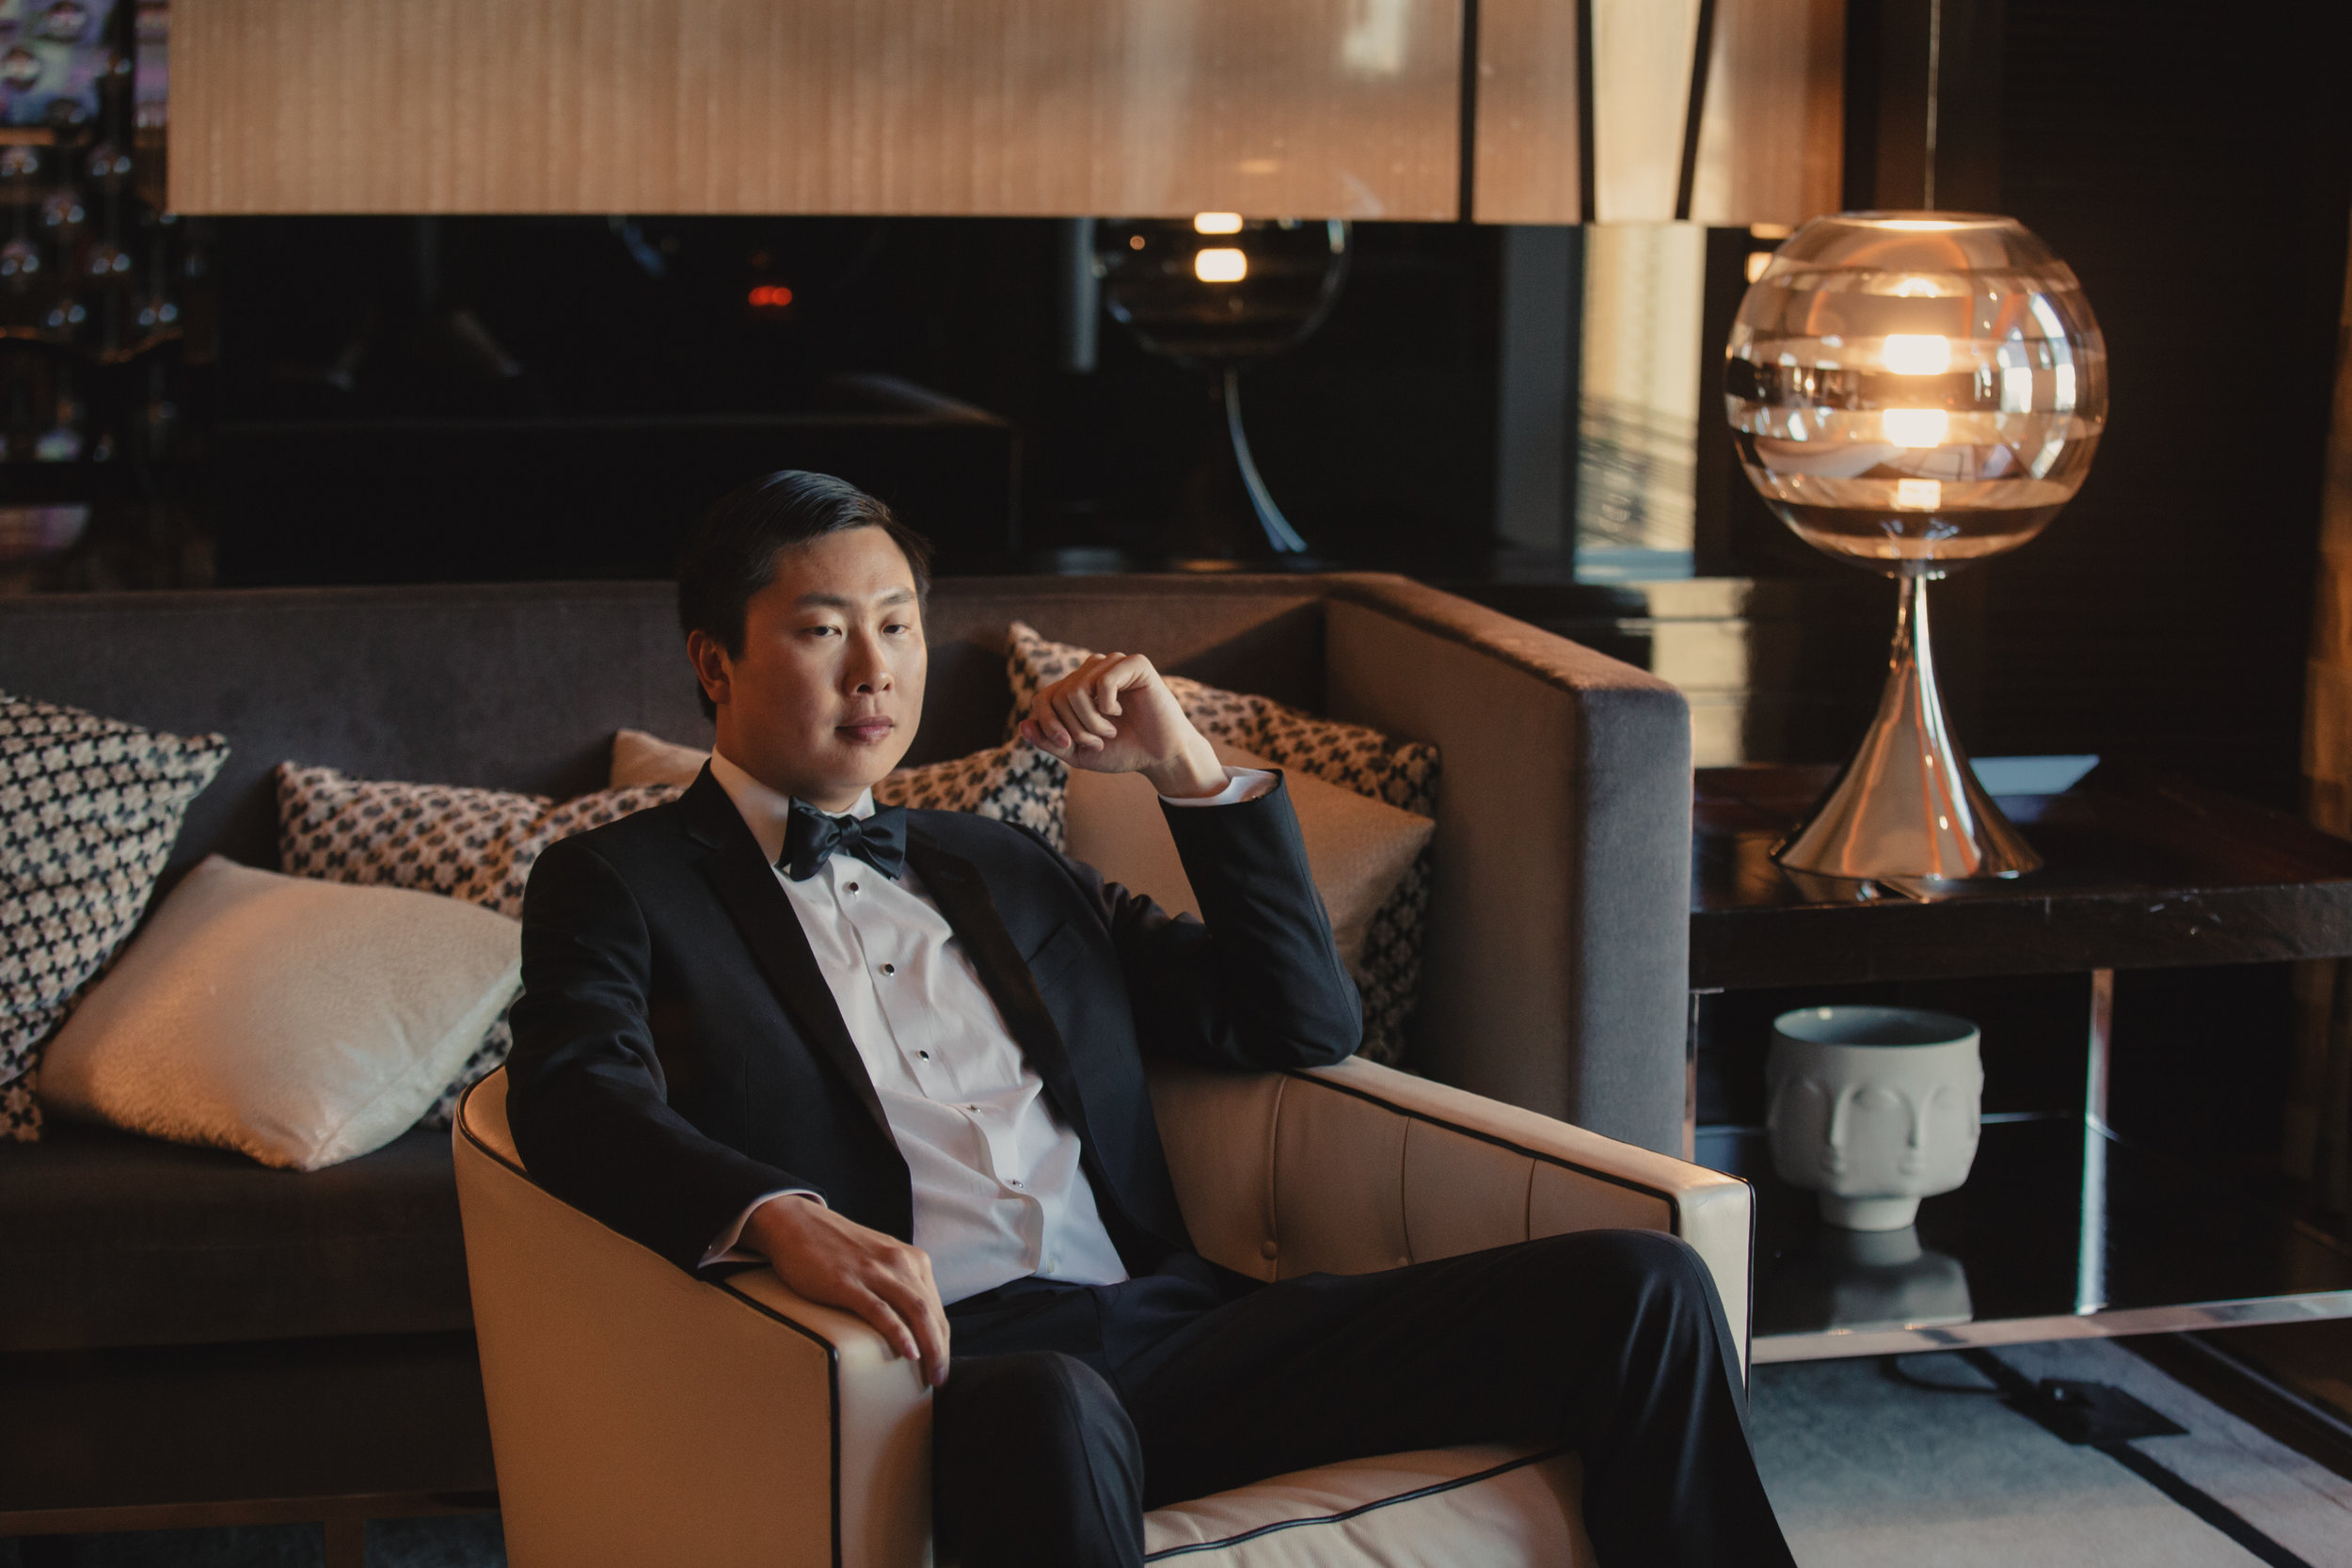 Groom in waiting.Luxury wedding at the Mandarin Oriental with a color scheme of white, blush, and pops of wine red produced by Las Vegas Wedding Planner Andrea Eppolito with photos by Stephen Salazar Photography.